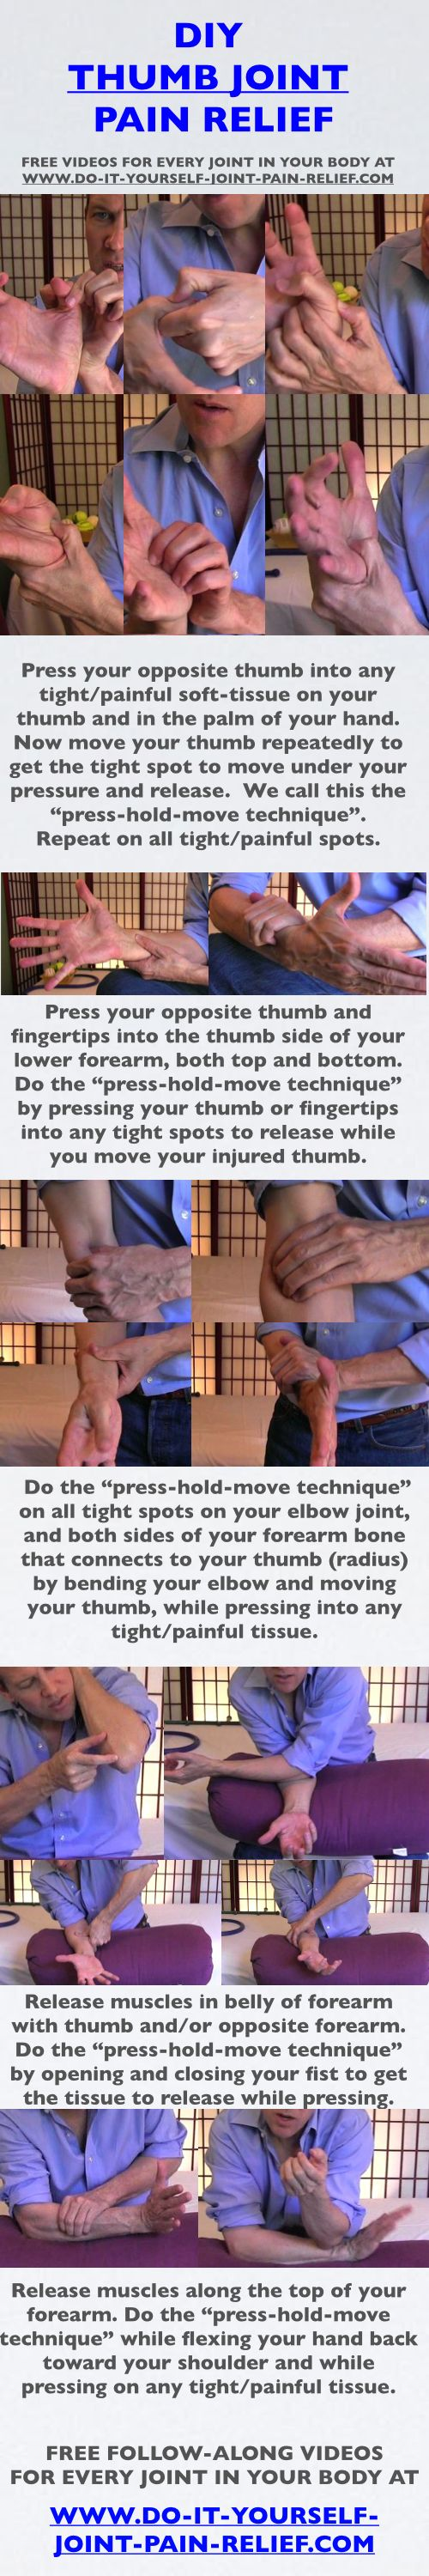 "This ""Thumb Joint Pain Relief Cheat Sheet"" is for anybody with a painful thumb...Texter-itis, iPad-itis, etc. or any thumb injury where the bone is not currently broken.  As always, Share it, Post it, Pin It, wherever you think it might help people.  FREE follow-along videos of these techniques at  http://www.do-it-yourself-joint-pain-relief.com/thumb-joint-pain-relief.html"